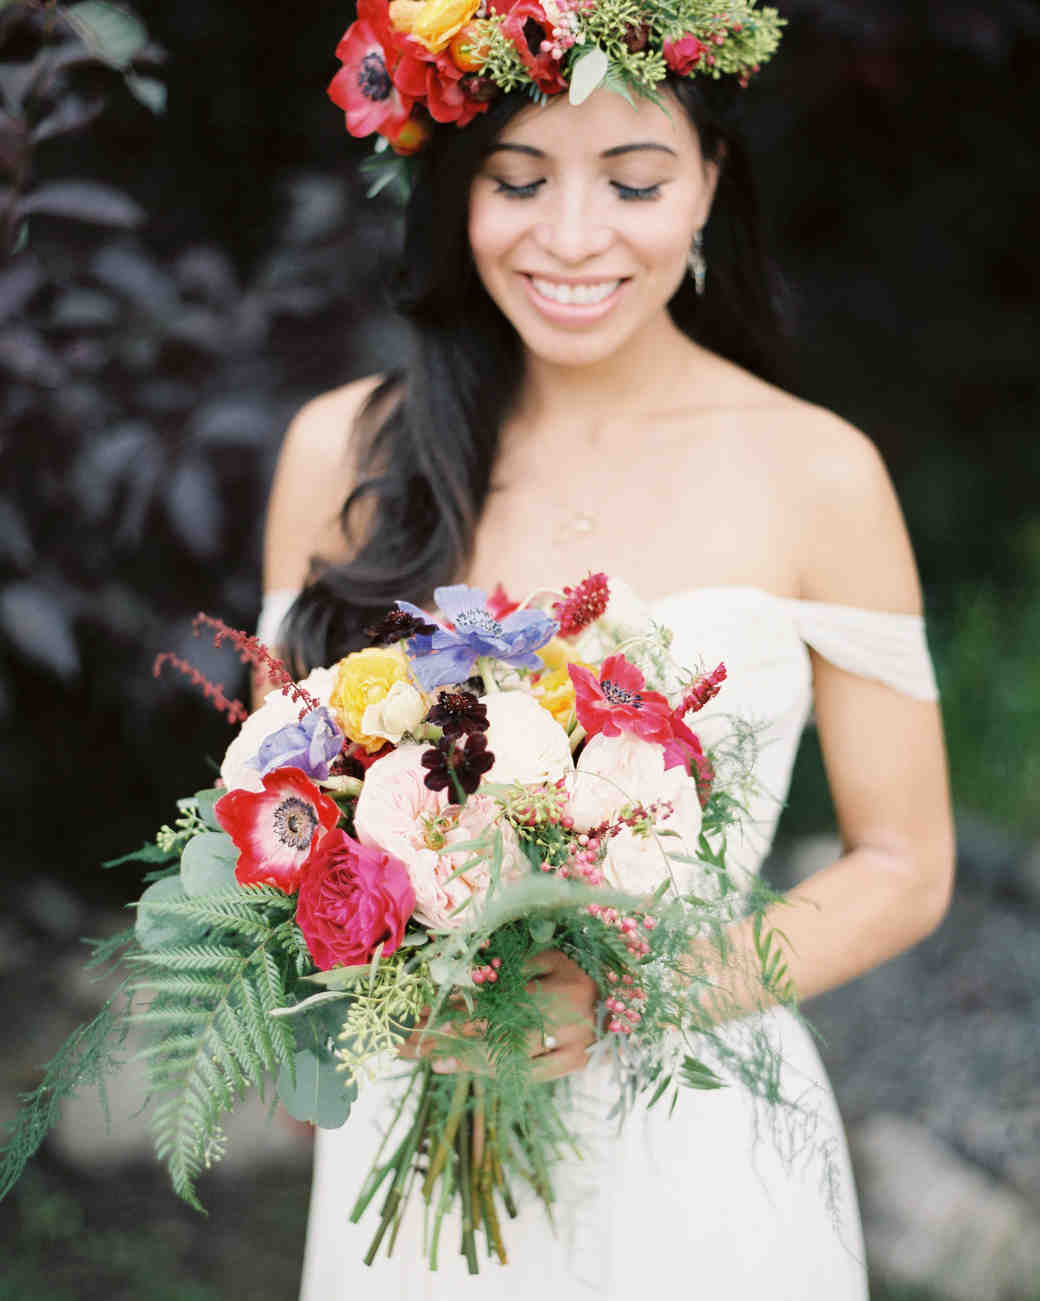 Fern Bouquet with Peonies and Anemones